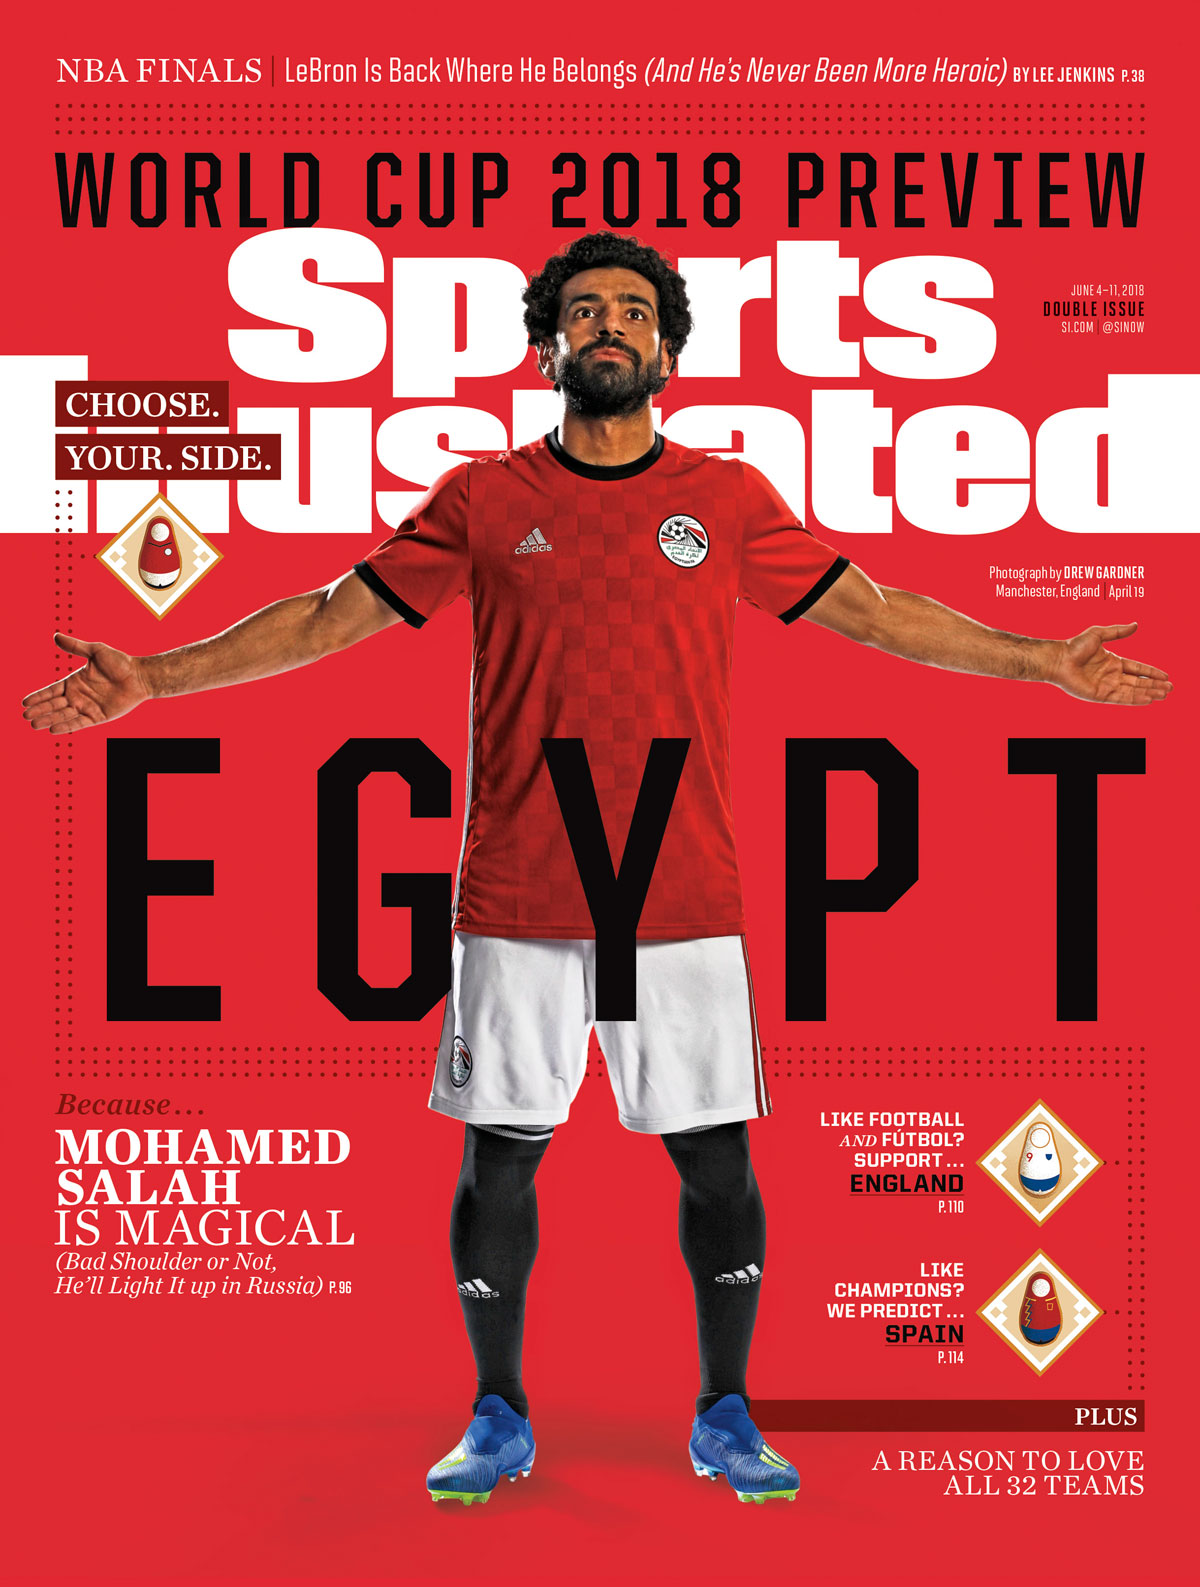 Mohamed Salah has led Egypt to its first World Cup since 1990